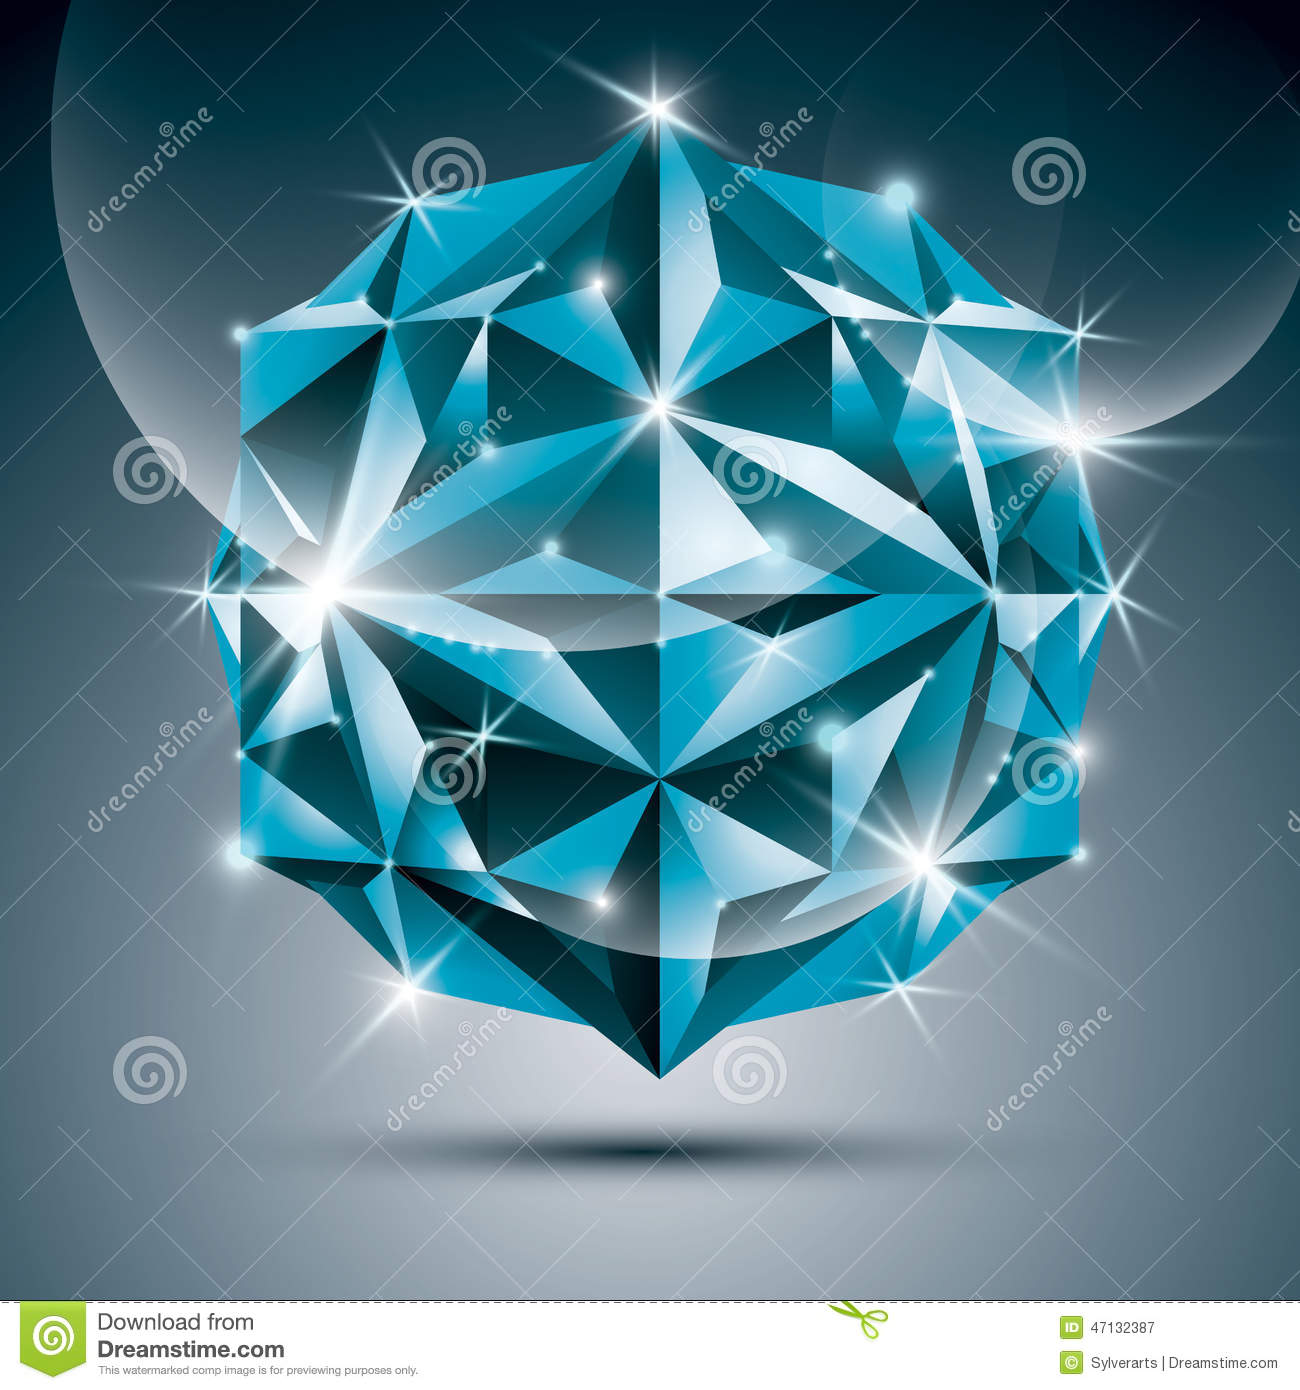 3D Blue Shiny Sphere. Vector Fractal Dazzling Abstract Illustrat.